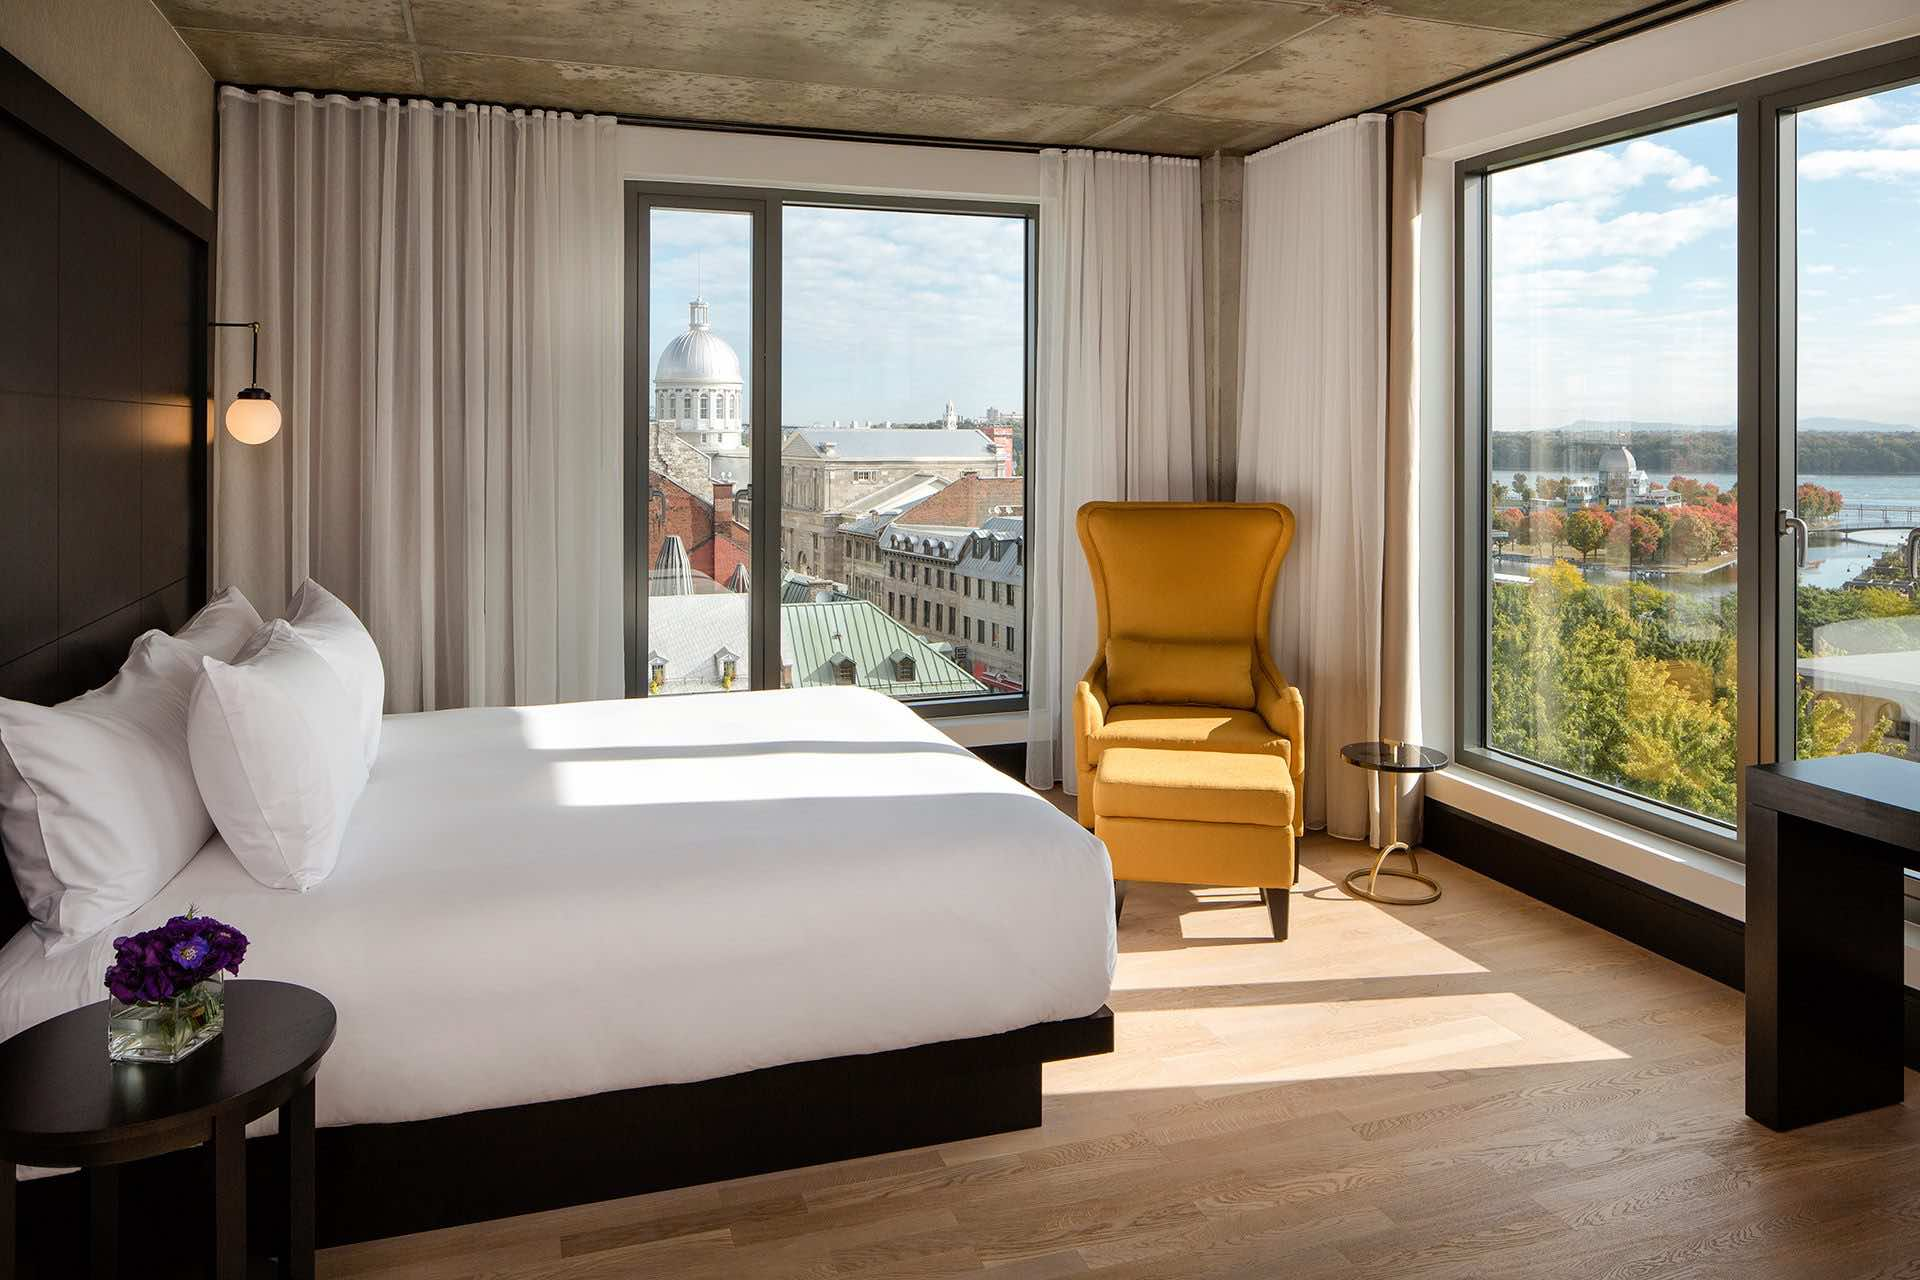 Hotel William Gray bedroom of boutique hotels in Montreal view over St Lawrence and city